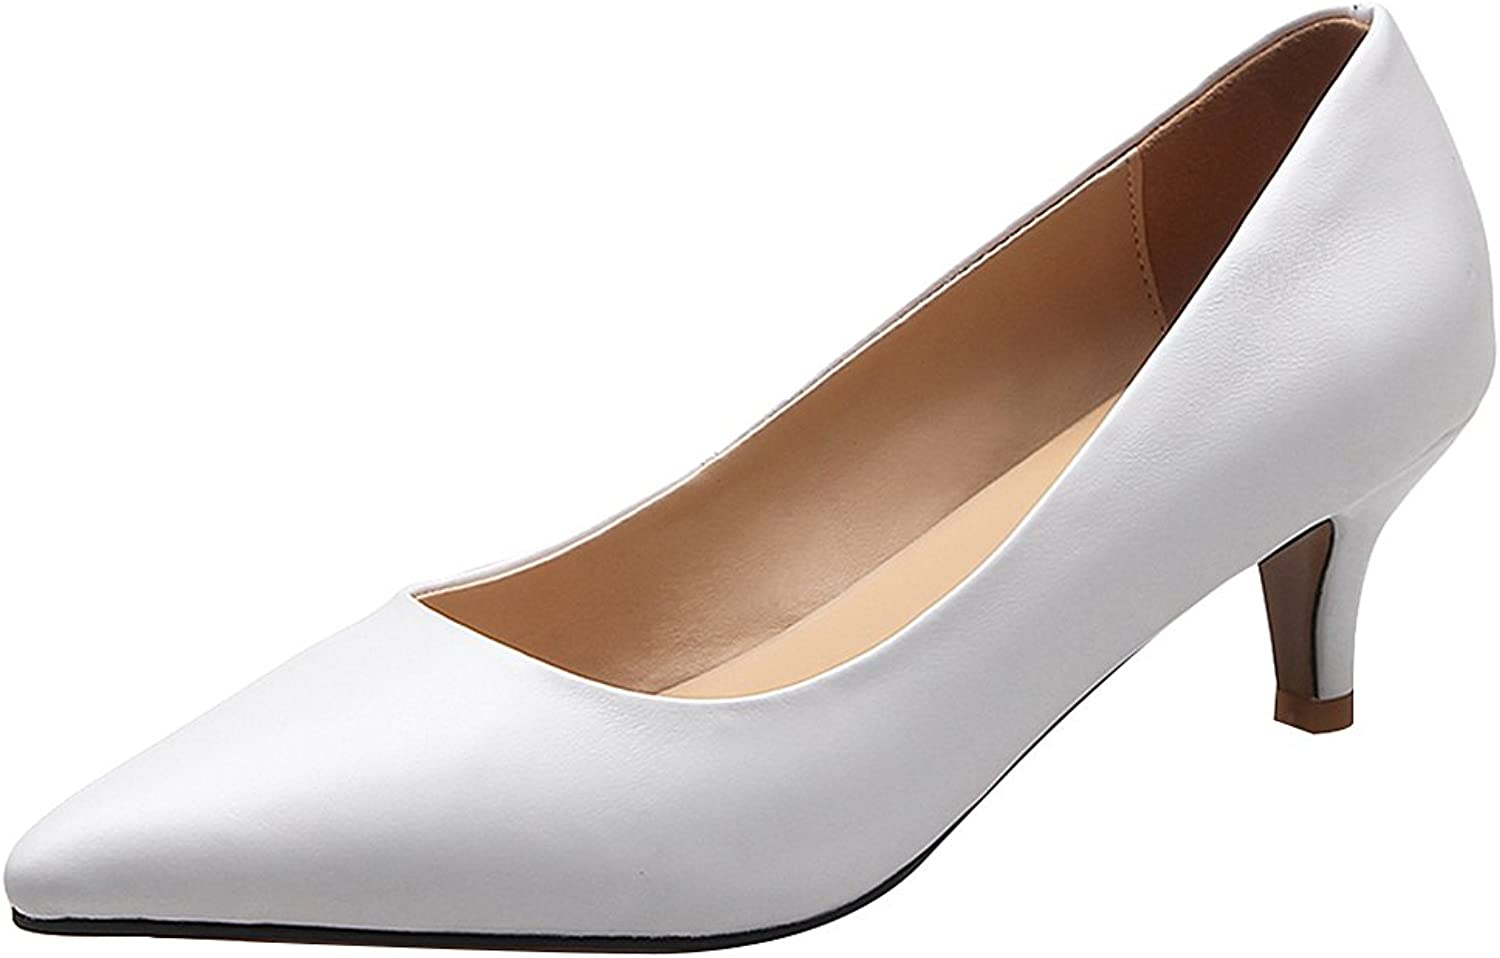 Rismart Women's Pointed Toe Kitten Heel Slip On Wedding Dress Leather Pumps shoes